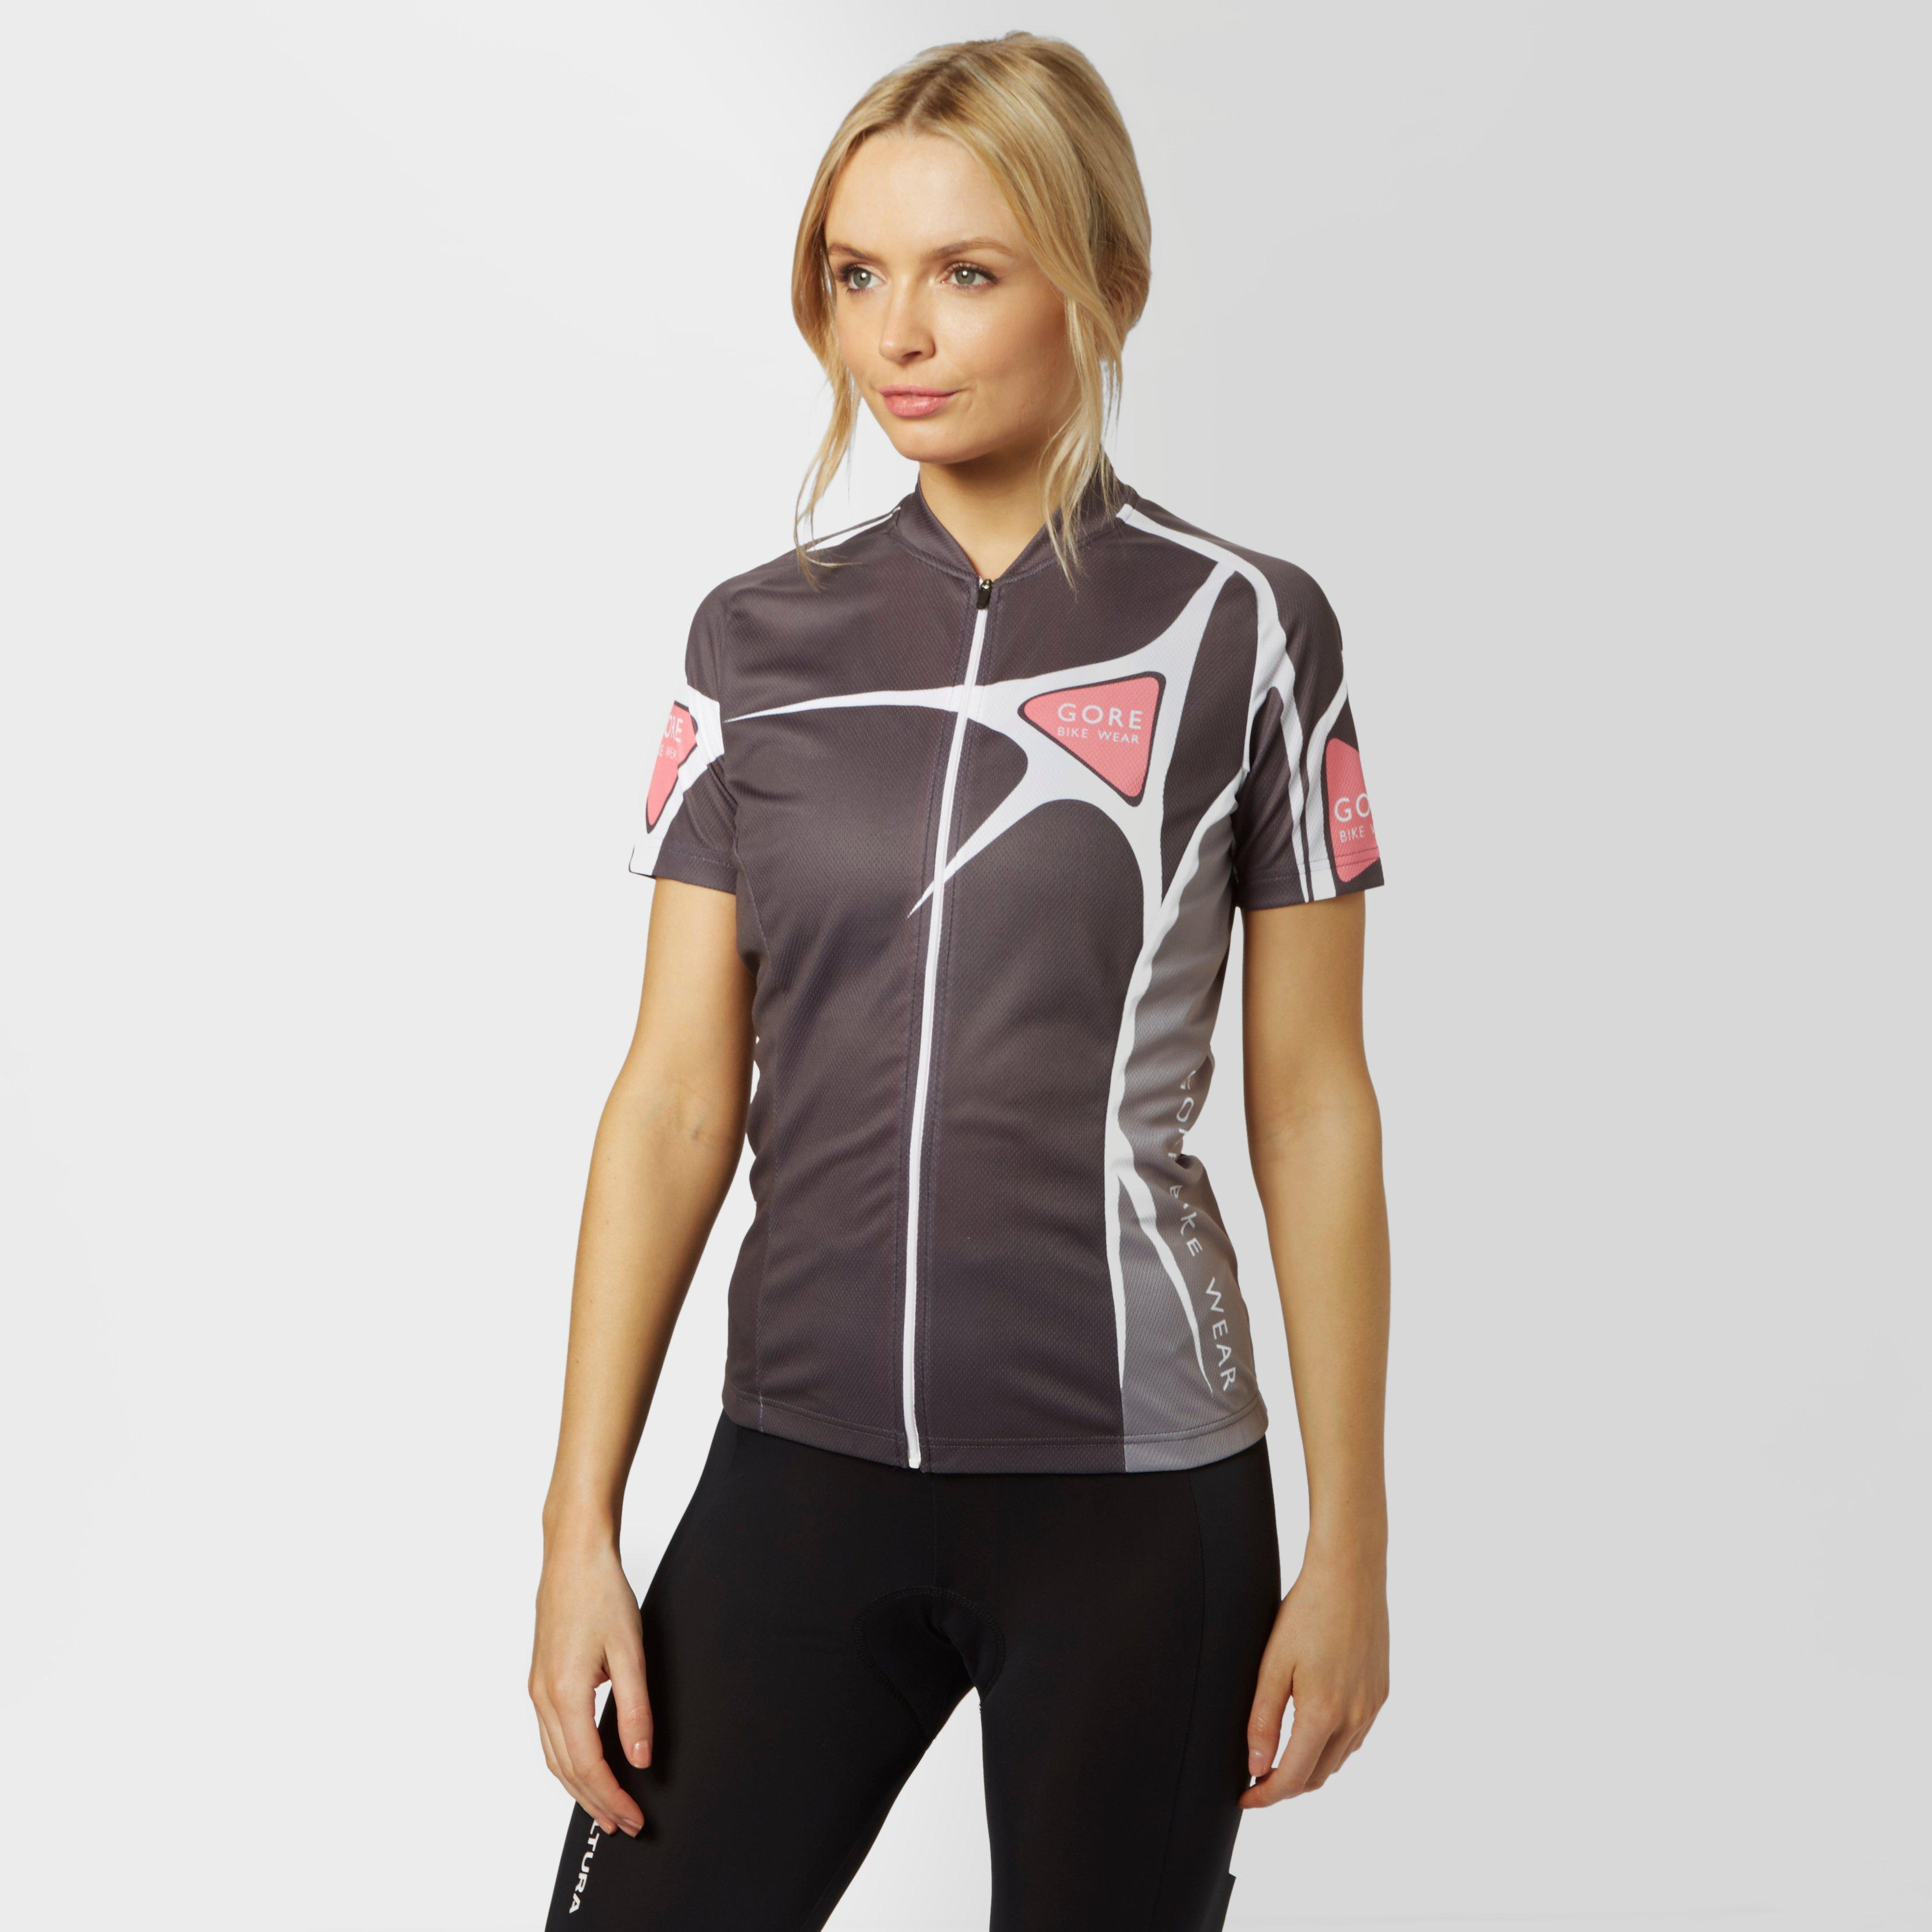 7761d42cf Details about New Gore Womens Lady Adrenaline 2.0 Jersey Cycling Gear